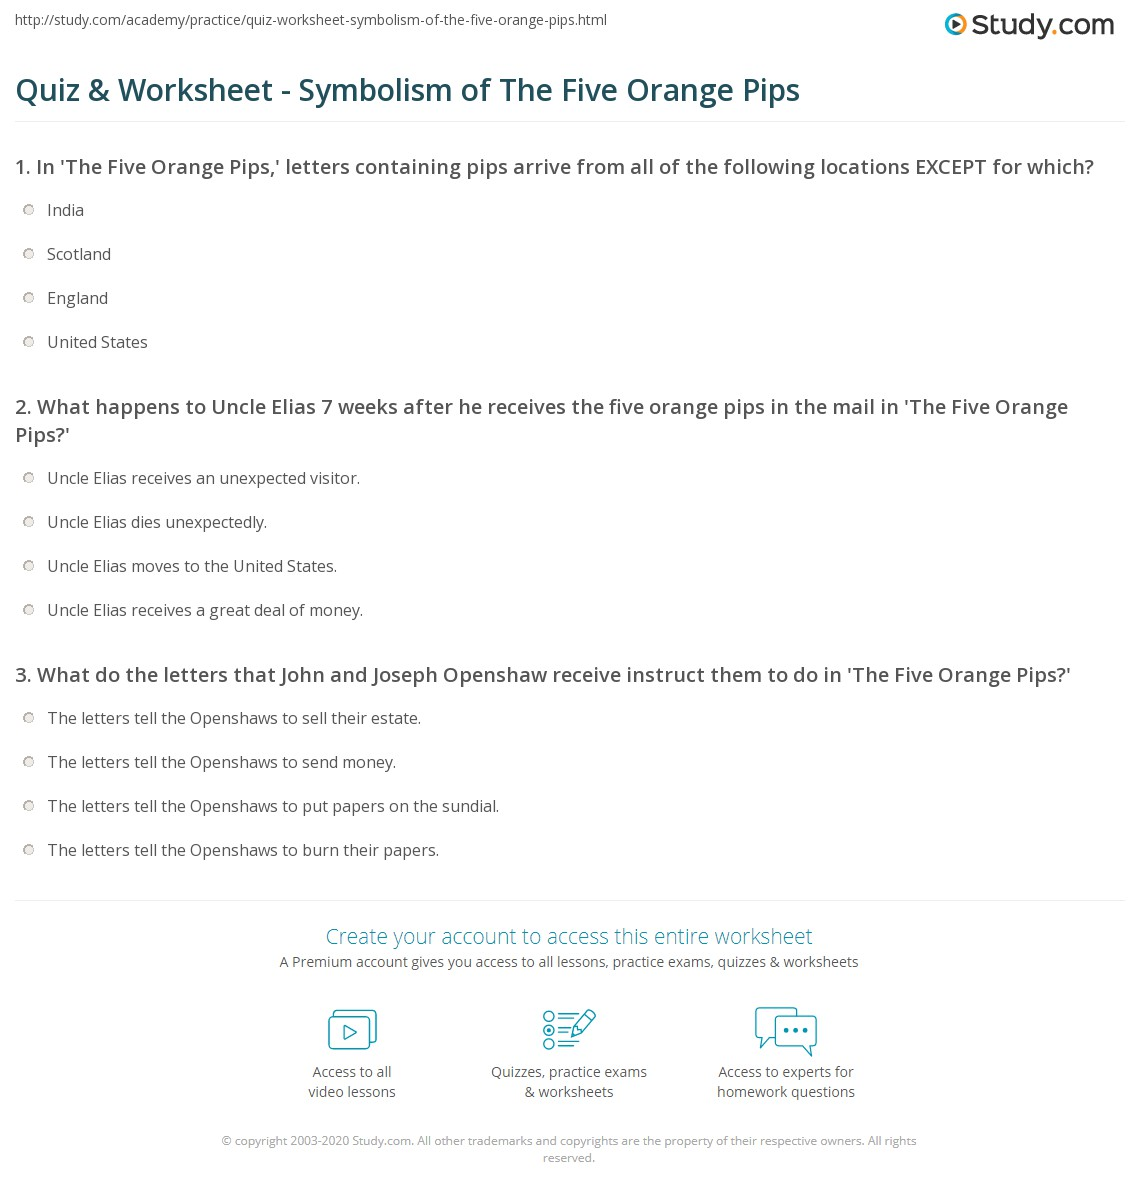 Quiz Worksheet Symbolism Of The Five Orange Pips Study